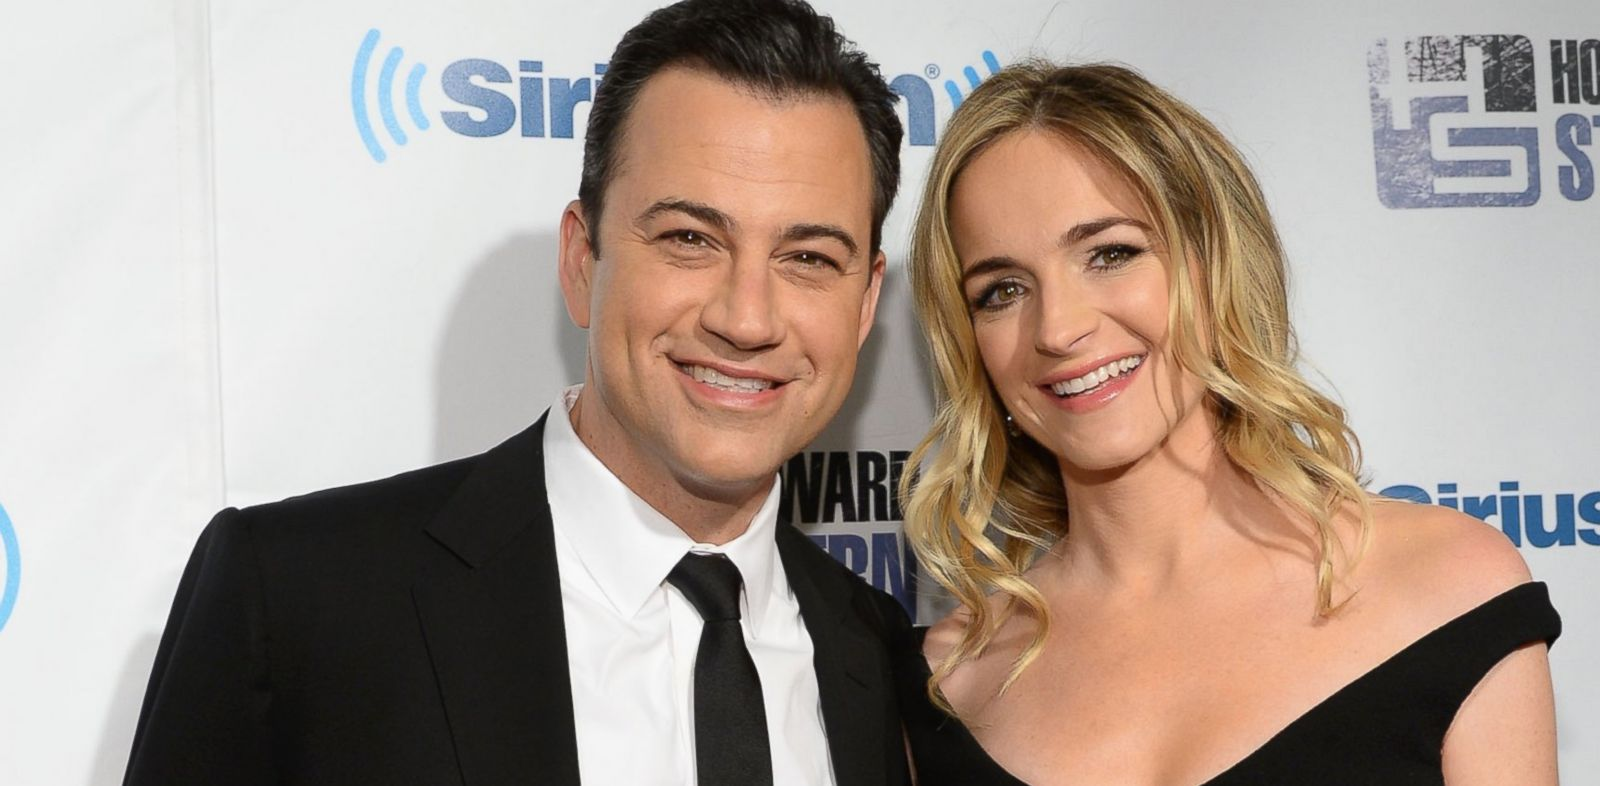 PHOTO: Jimmy Kimmel and Molly McNearney at Hammerstein Ballroom